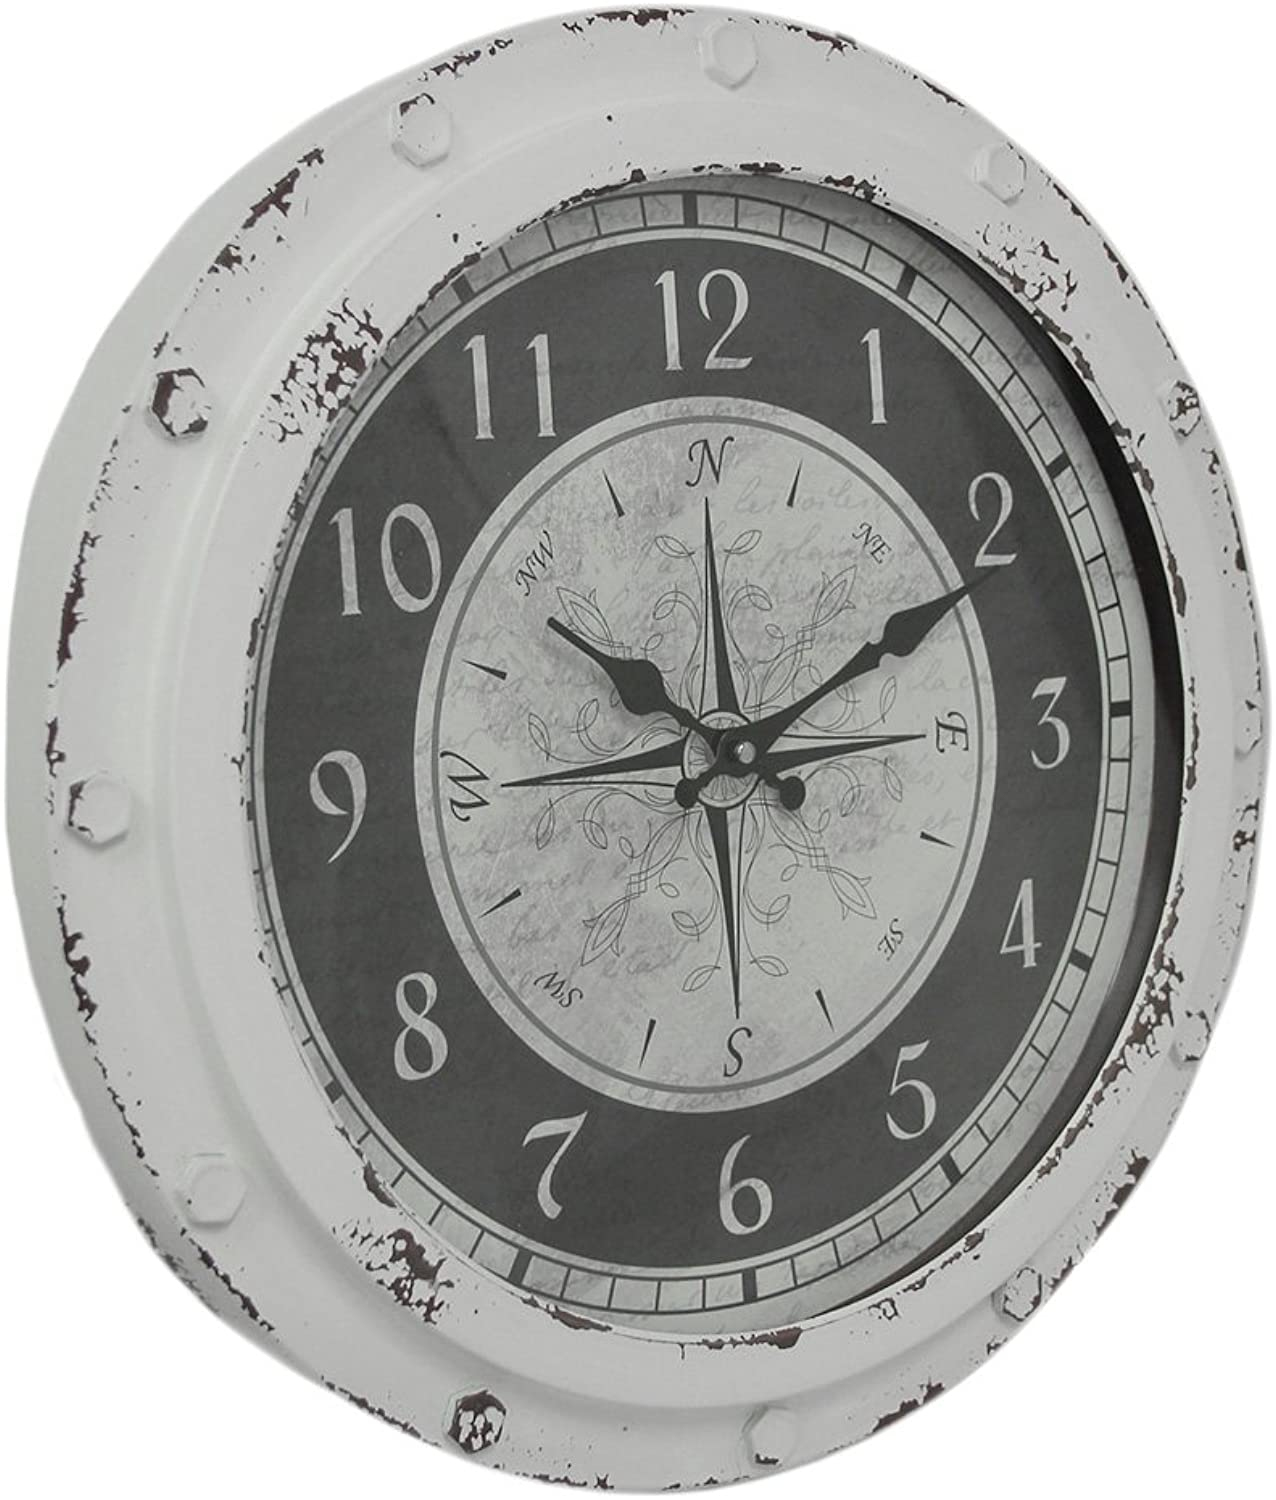 Zeckos Weathered White Metal Round Compass pink 18 inch Wall Clock